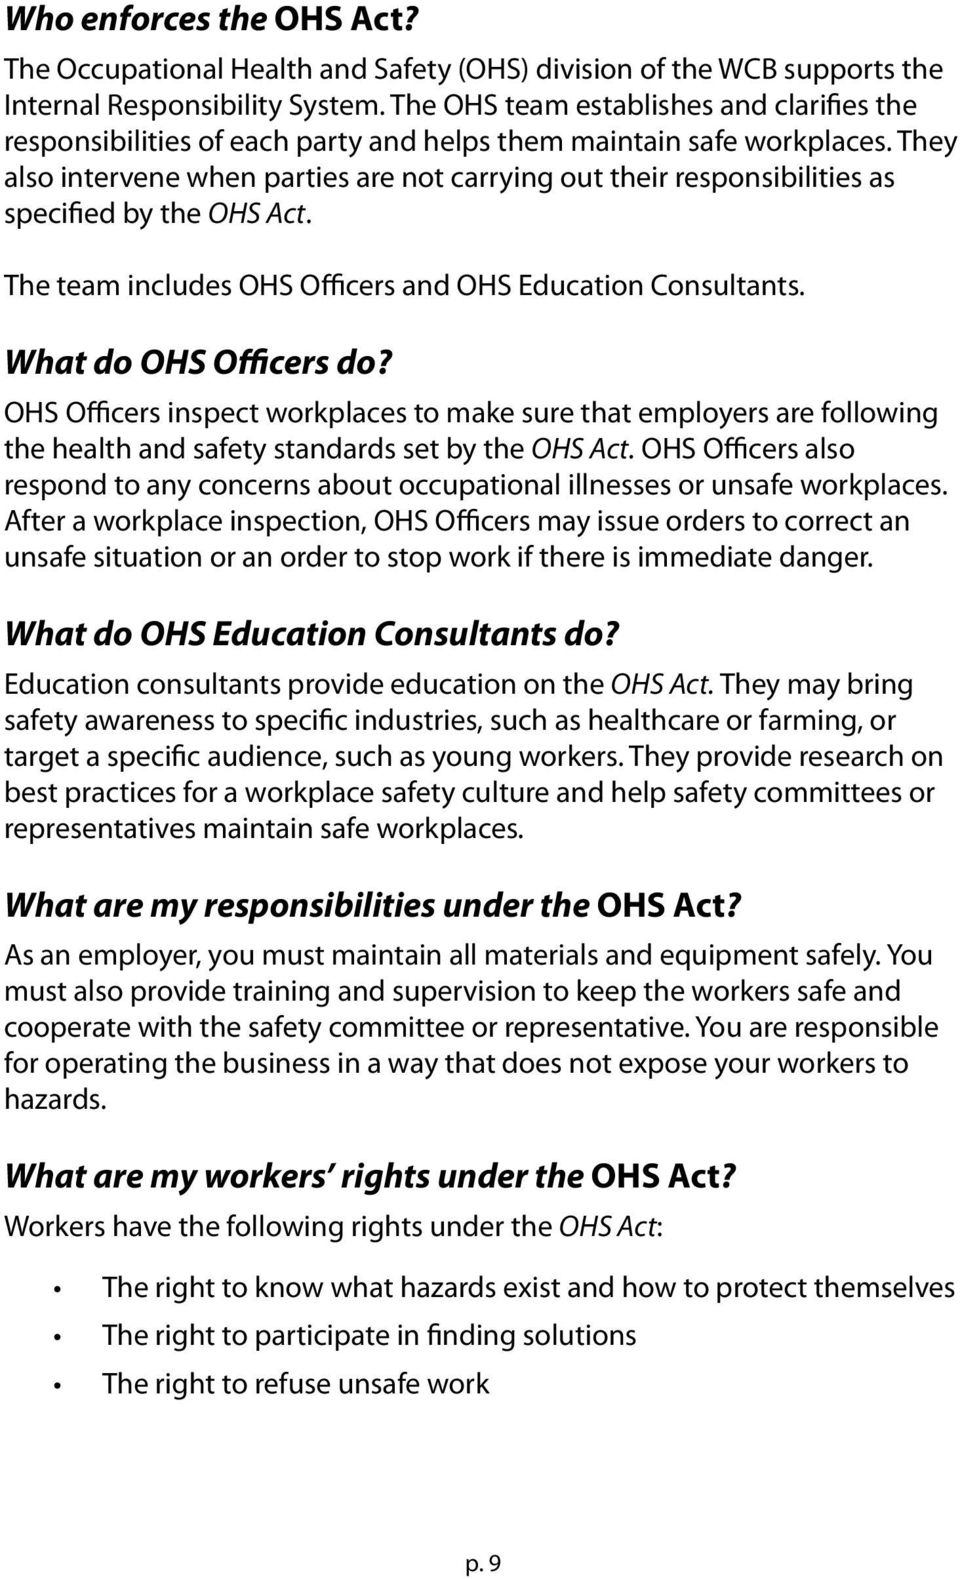 They also intervene when parties are not carrying out their responsibilities as specified by the OHS Act. The team includes OHS Officers and OHS Education Consultants. What do OHS Officers do?